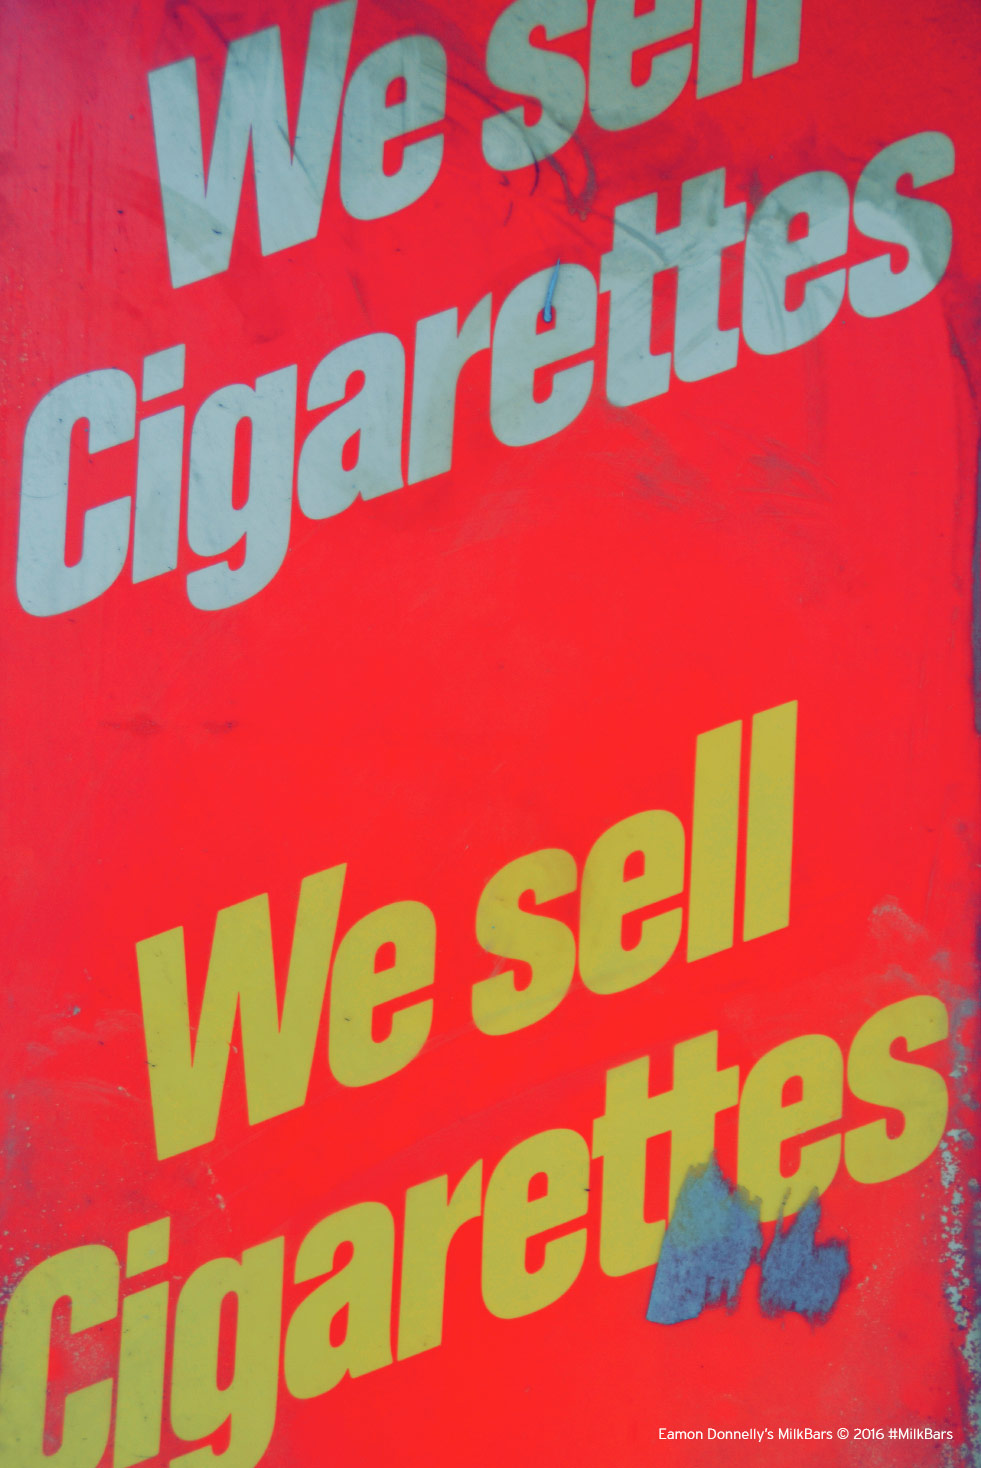 We-Sell-Ciggies-Milk-Bar-Eamon-Donnelly's-Milk-Bars-Book-Project-(c)-2001-2016.jpg